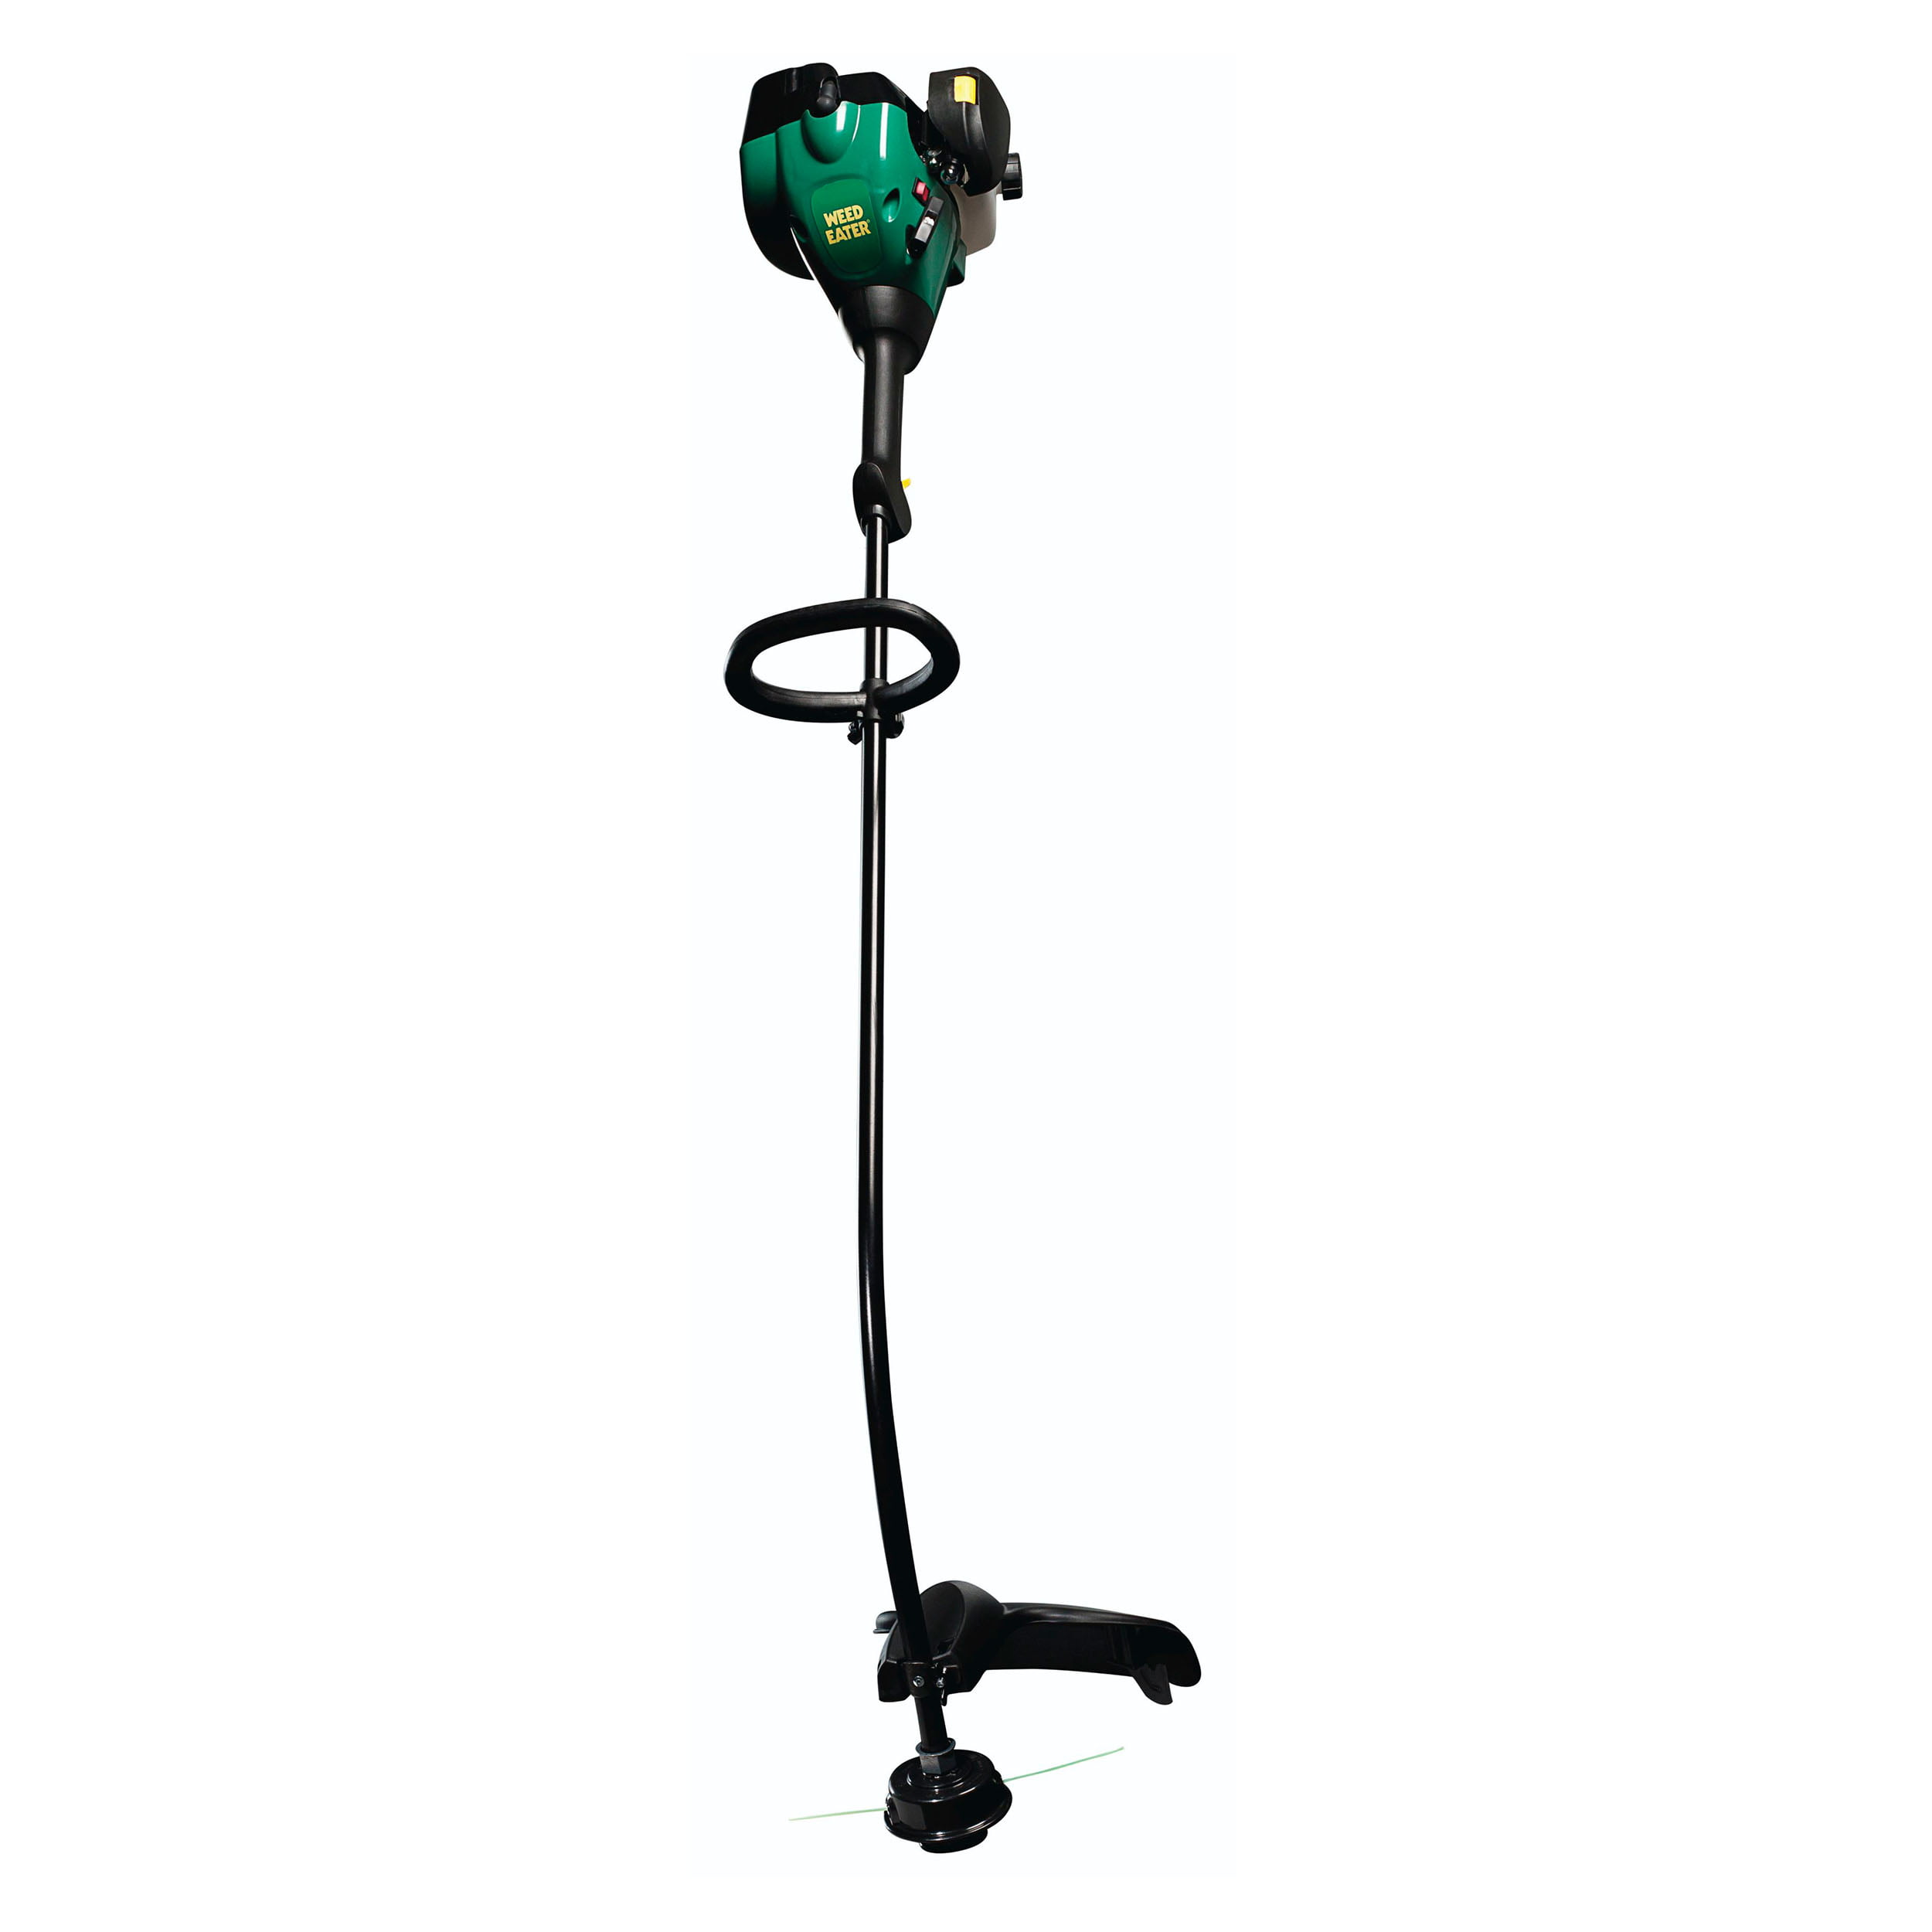 Weed Eater 17 in  25cc 2-Cycle Gas Curved Shaft String Trimmer